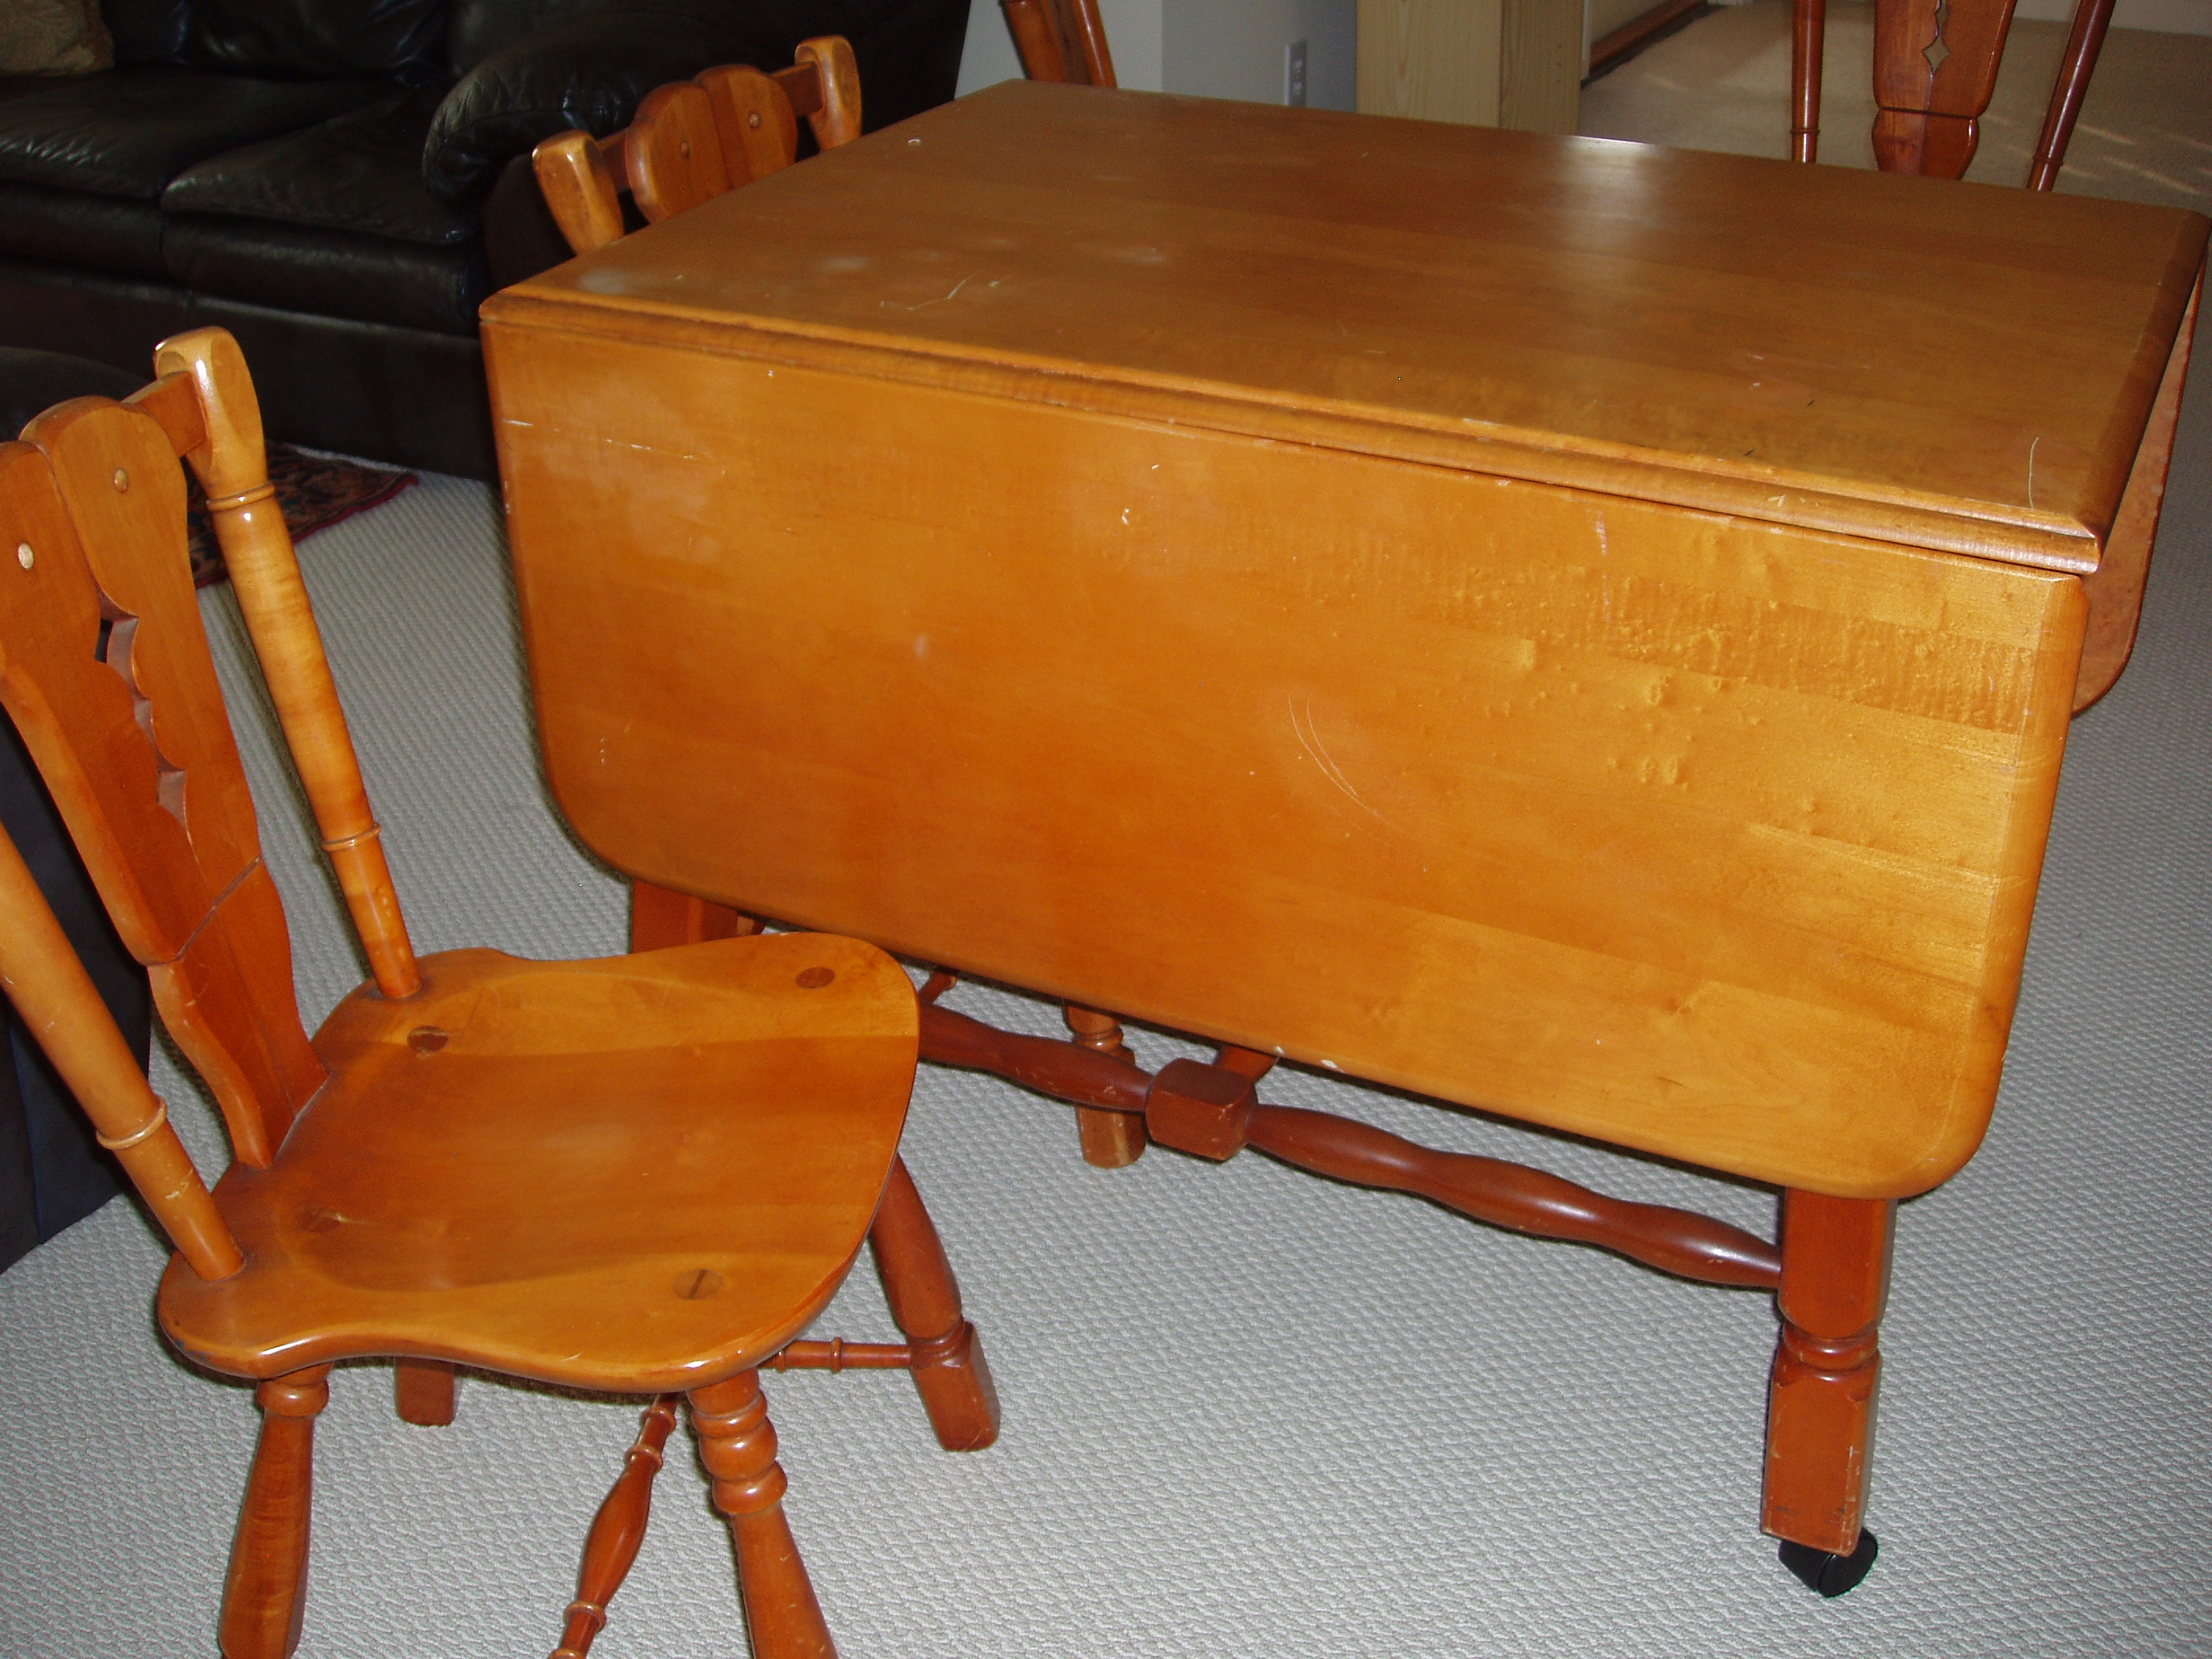 Drop Leaf Table With Chairs Maple Drop Leaf Table And 4 Chairs For Sale Antiques